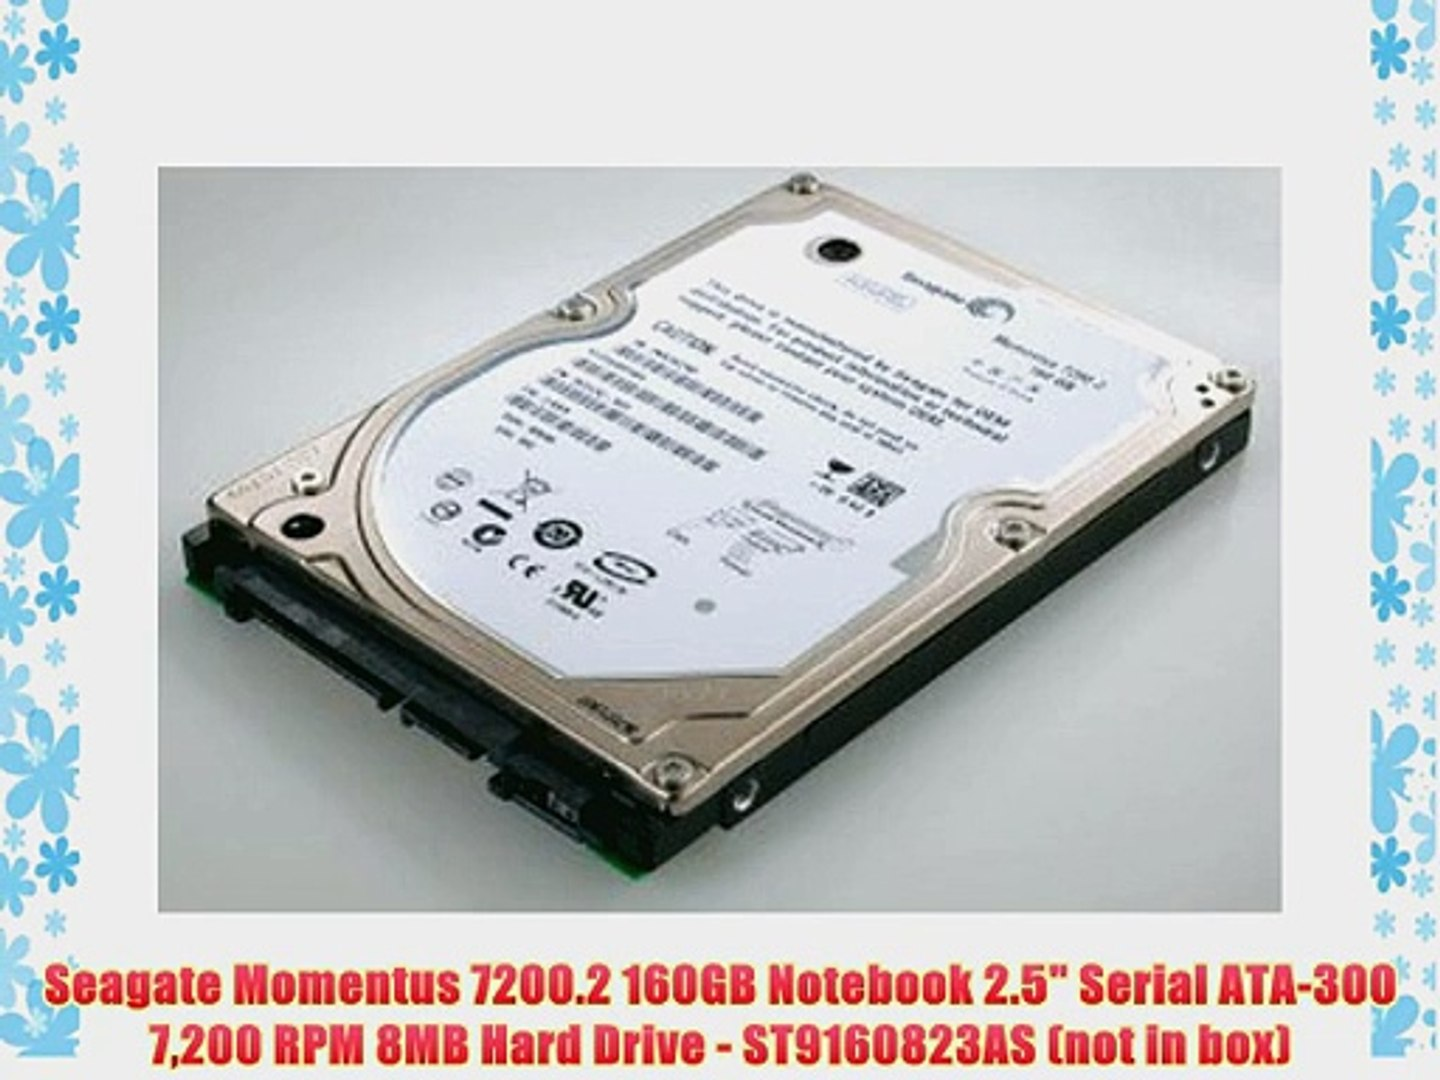 not in box ST9160823AS Seagate Momentus 7200.2 160GB Notebook 2.5 Serial ATA-300 7,200 RPM 8MB Hard Drive